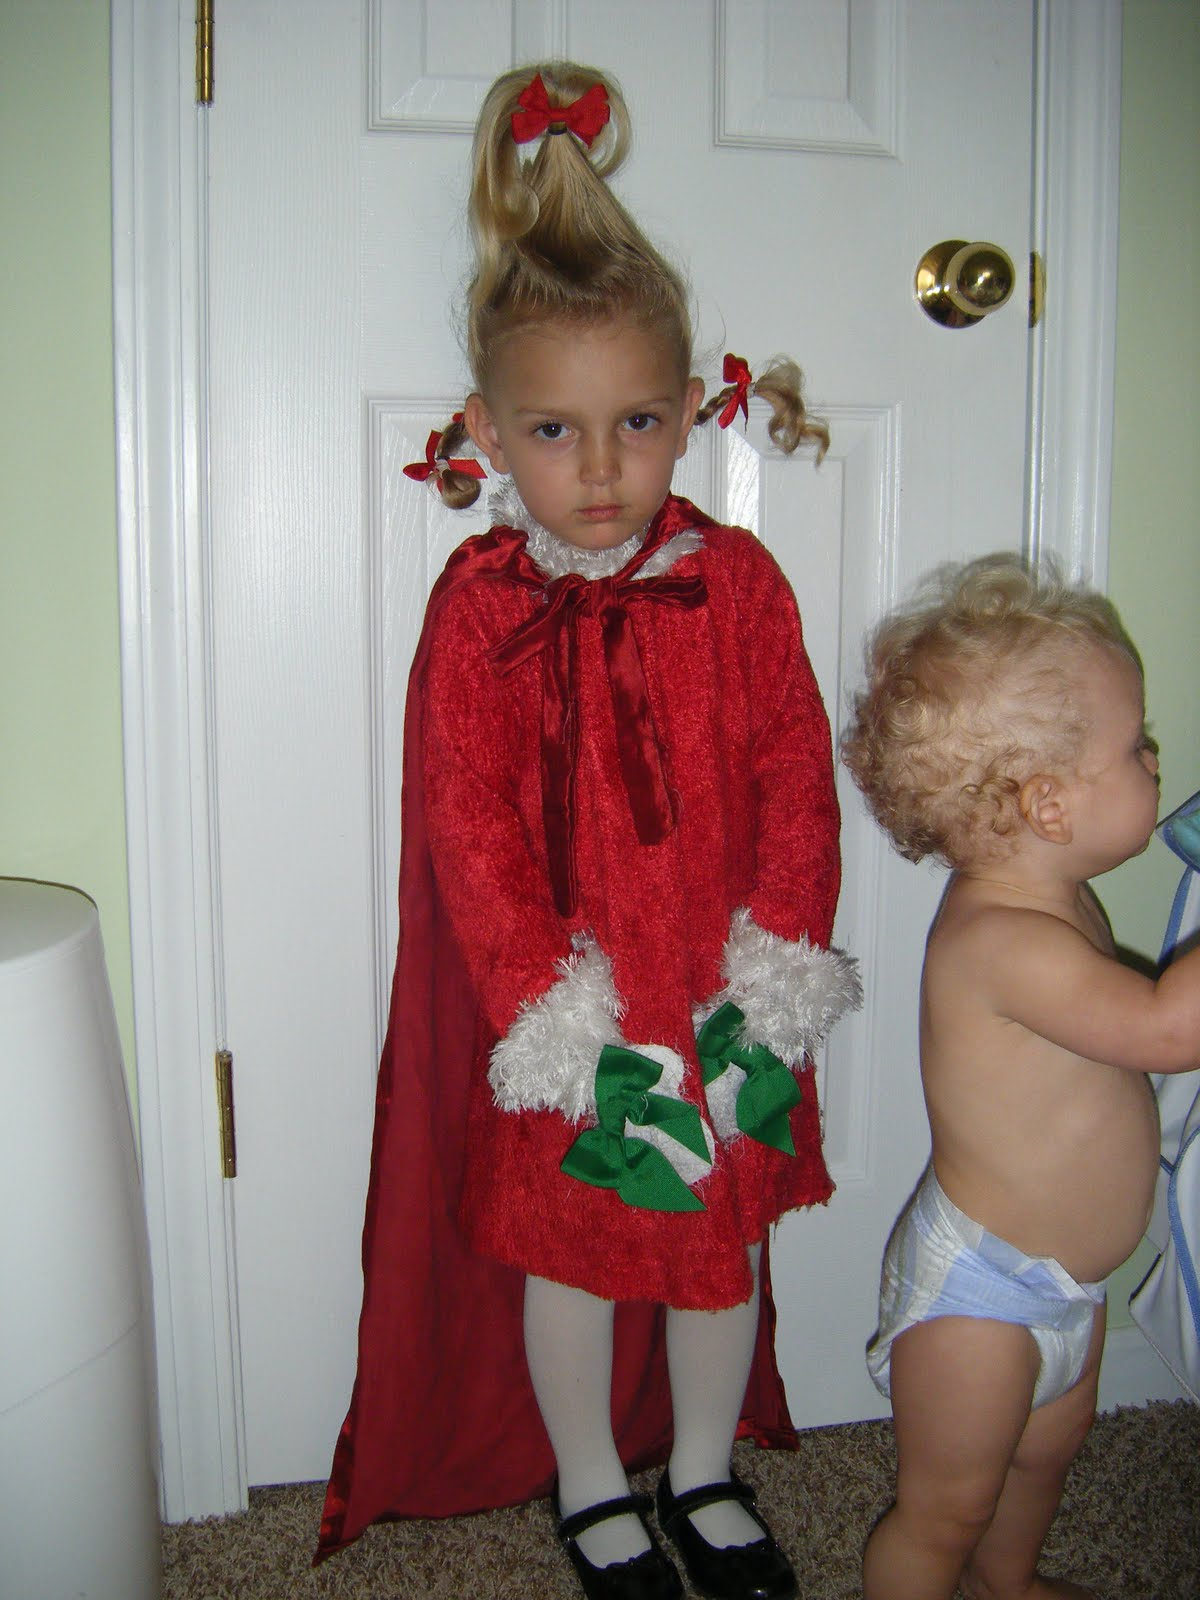 The eddy family whoville s cindy - Whoville Dress The Eddy Family Whoville S Cindy Lou Who And Baby